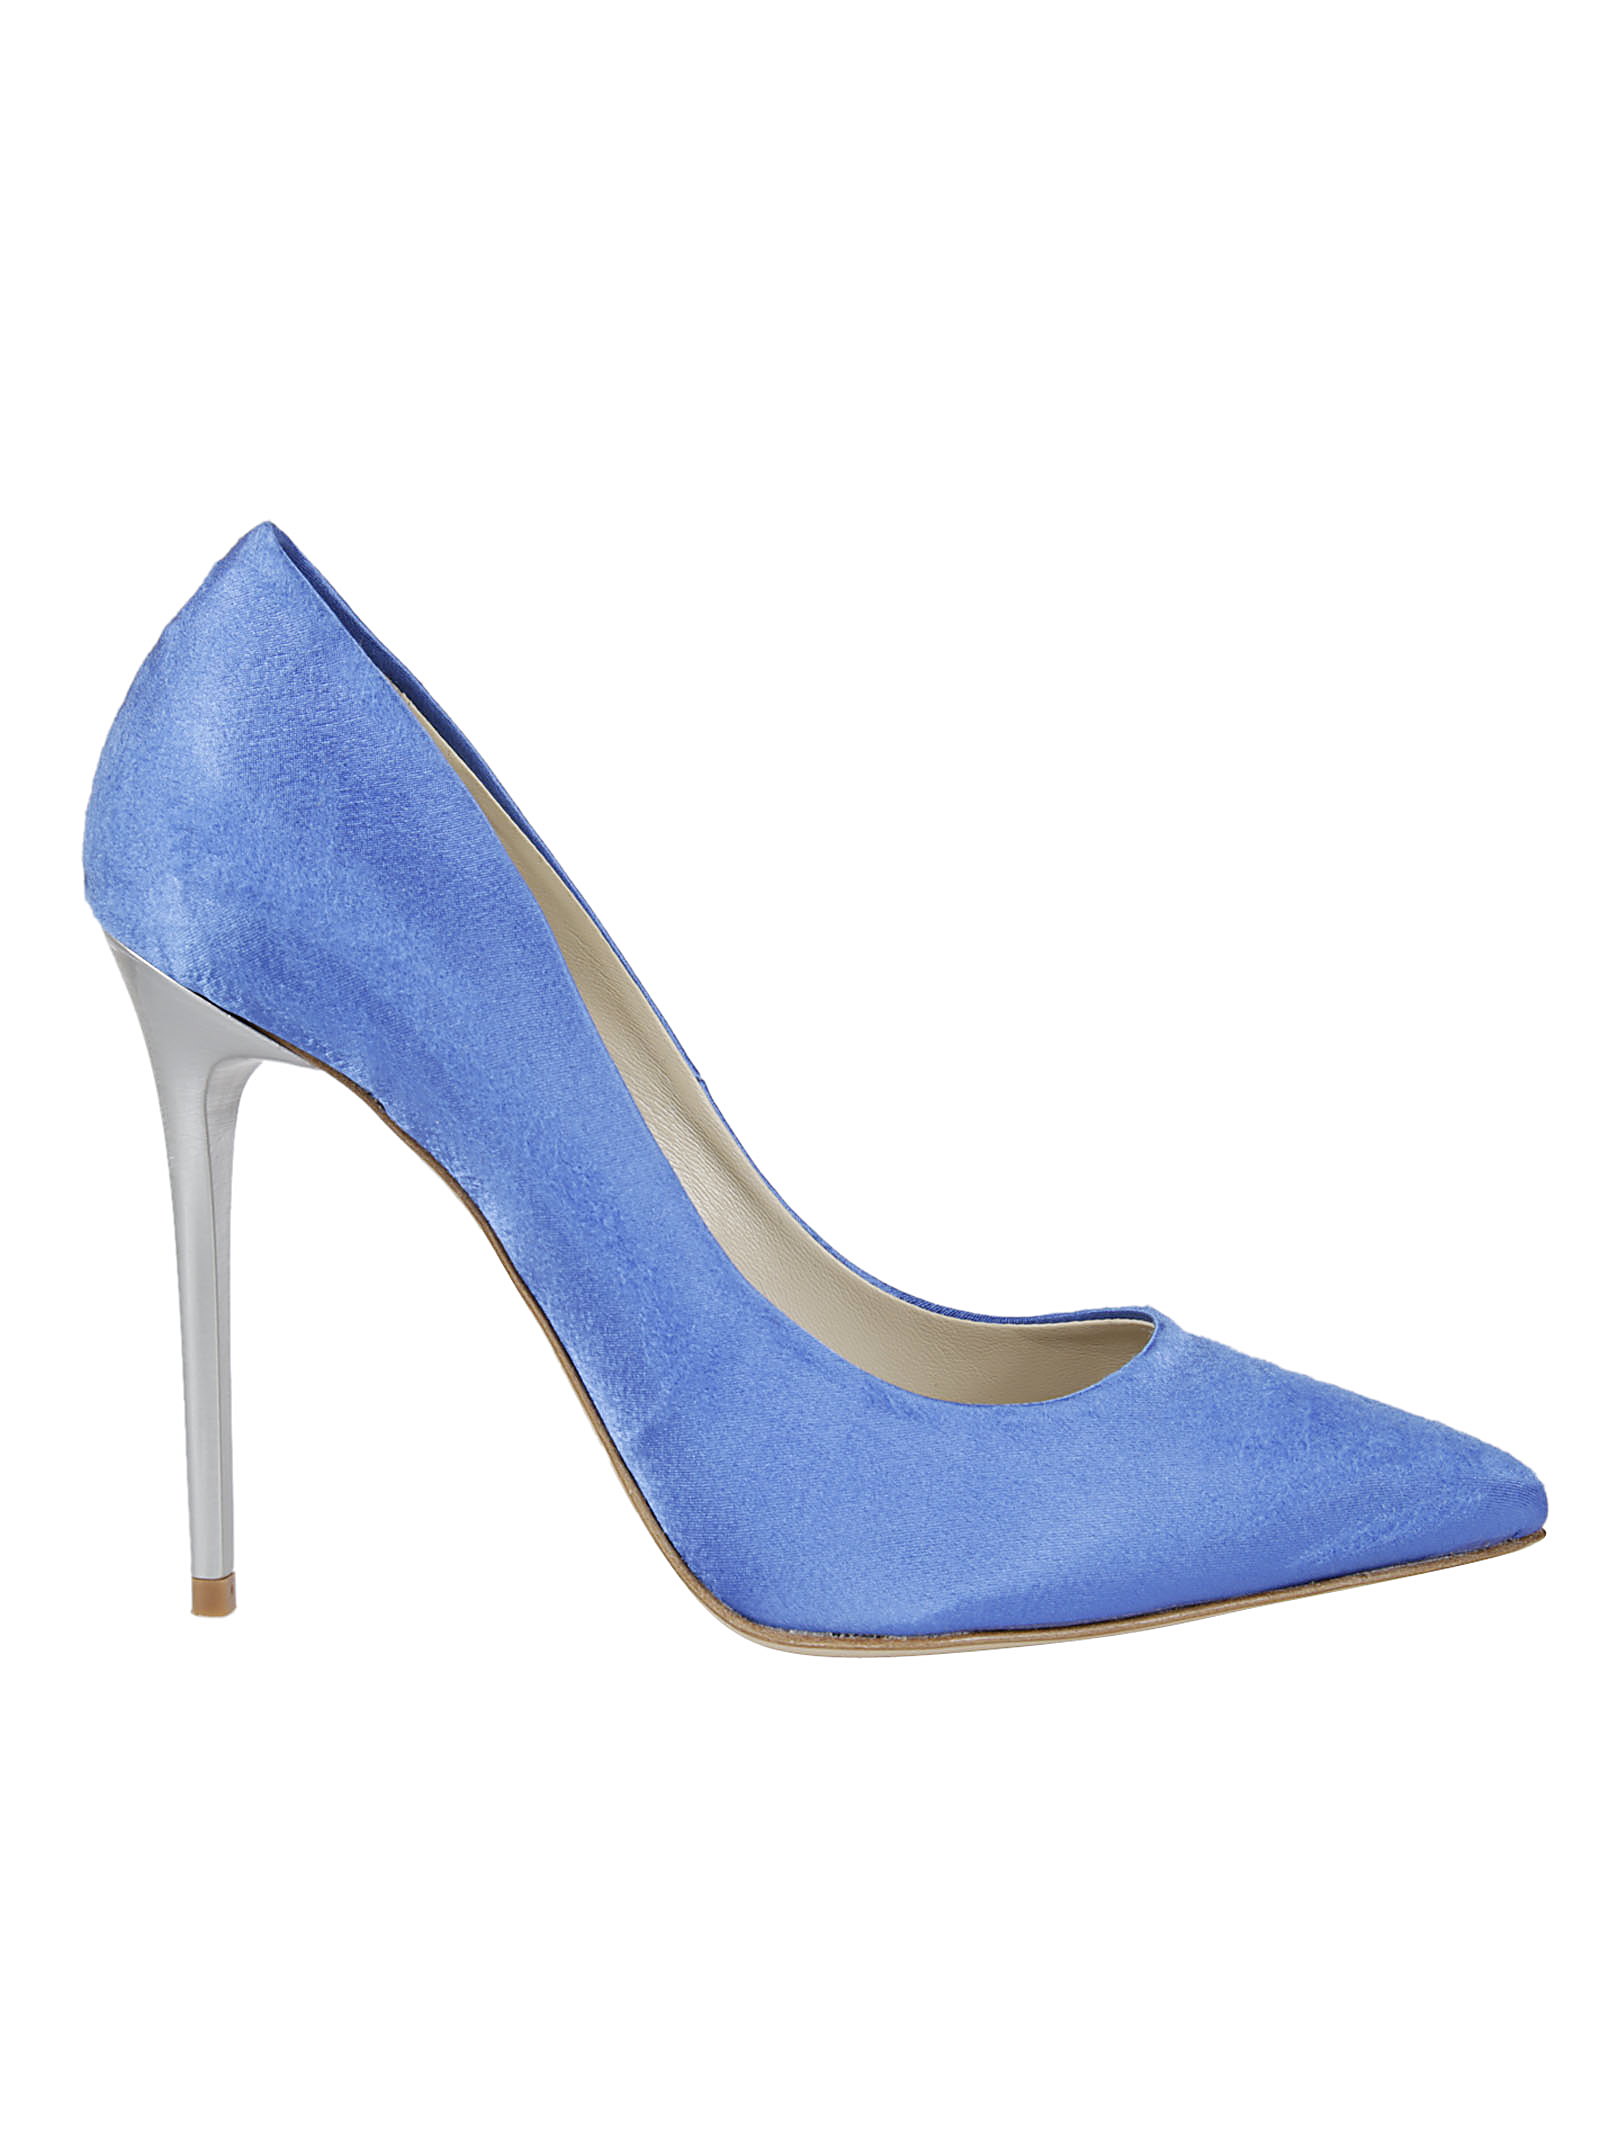 luca valentini Luca Valentini Pointed Toe Pumps